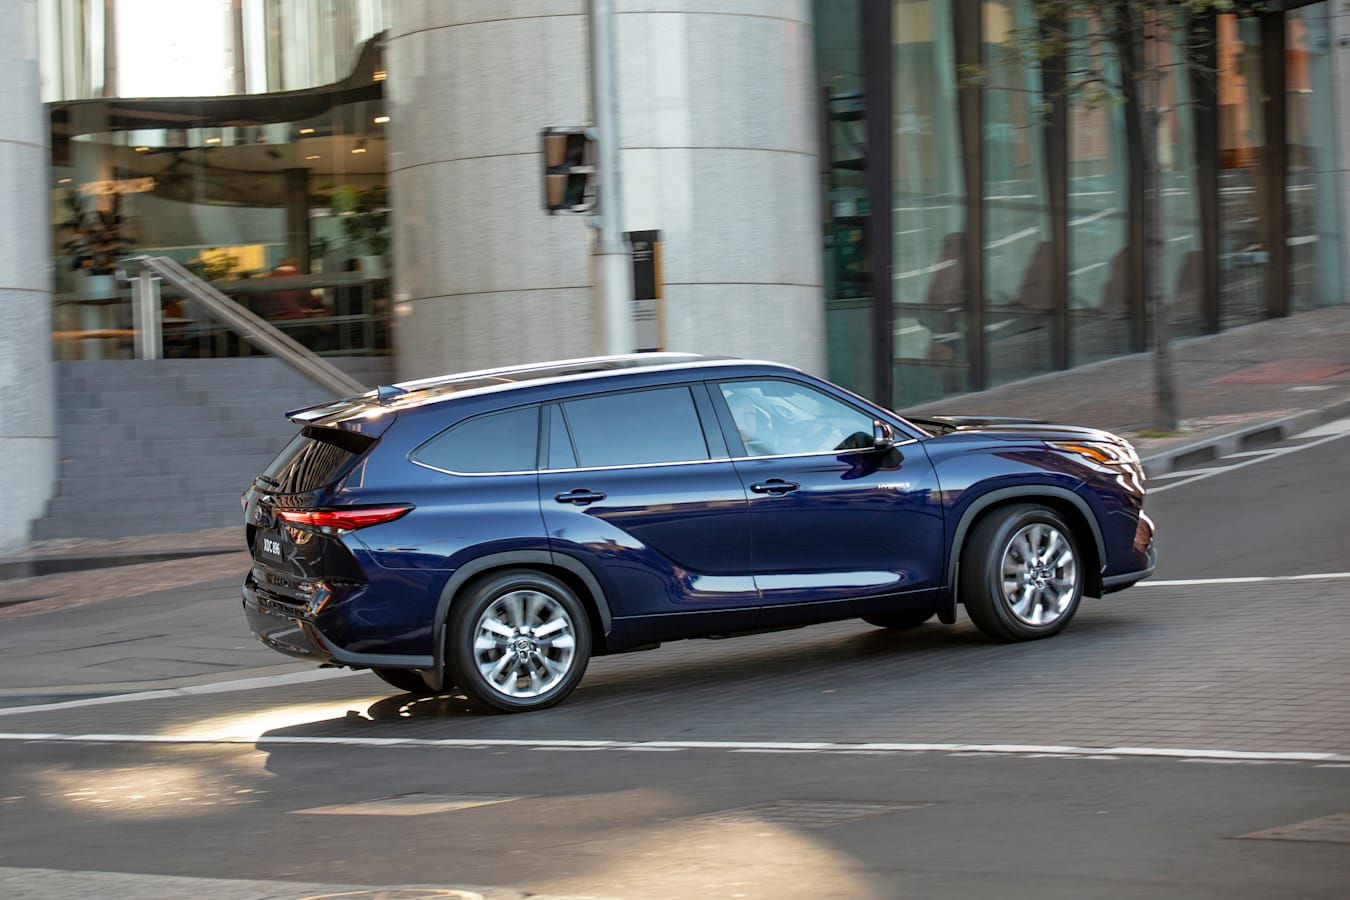 Wheels Reviews 2021 Toyota Kluger Hybrid Australian Model Ride And Handling Review